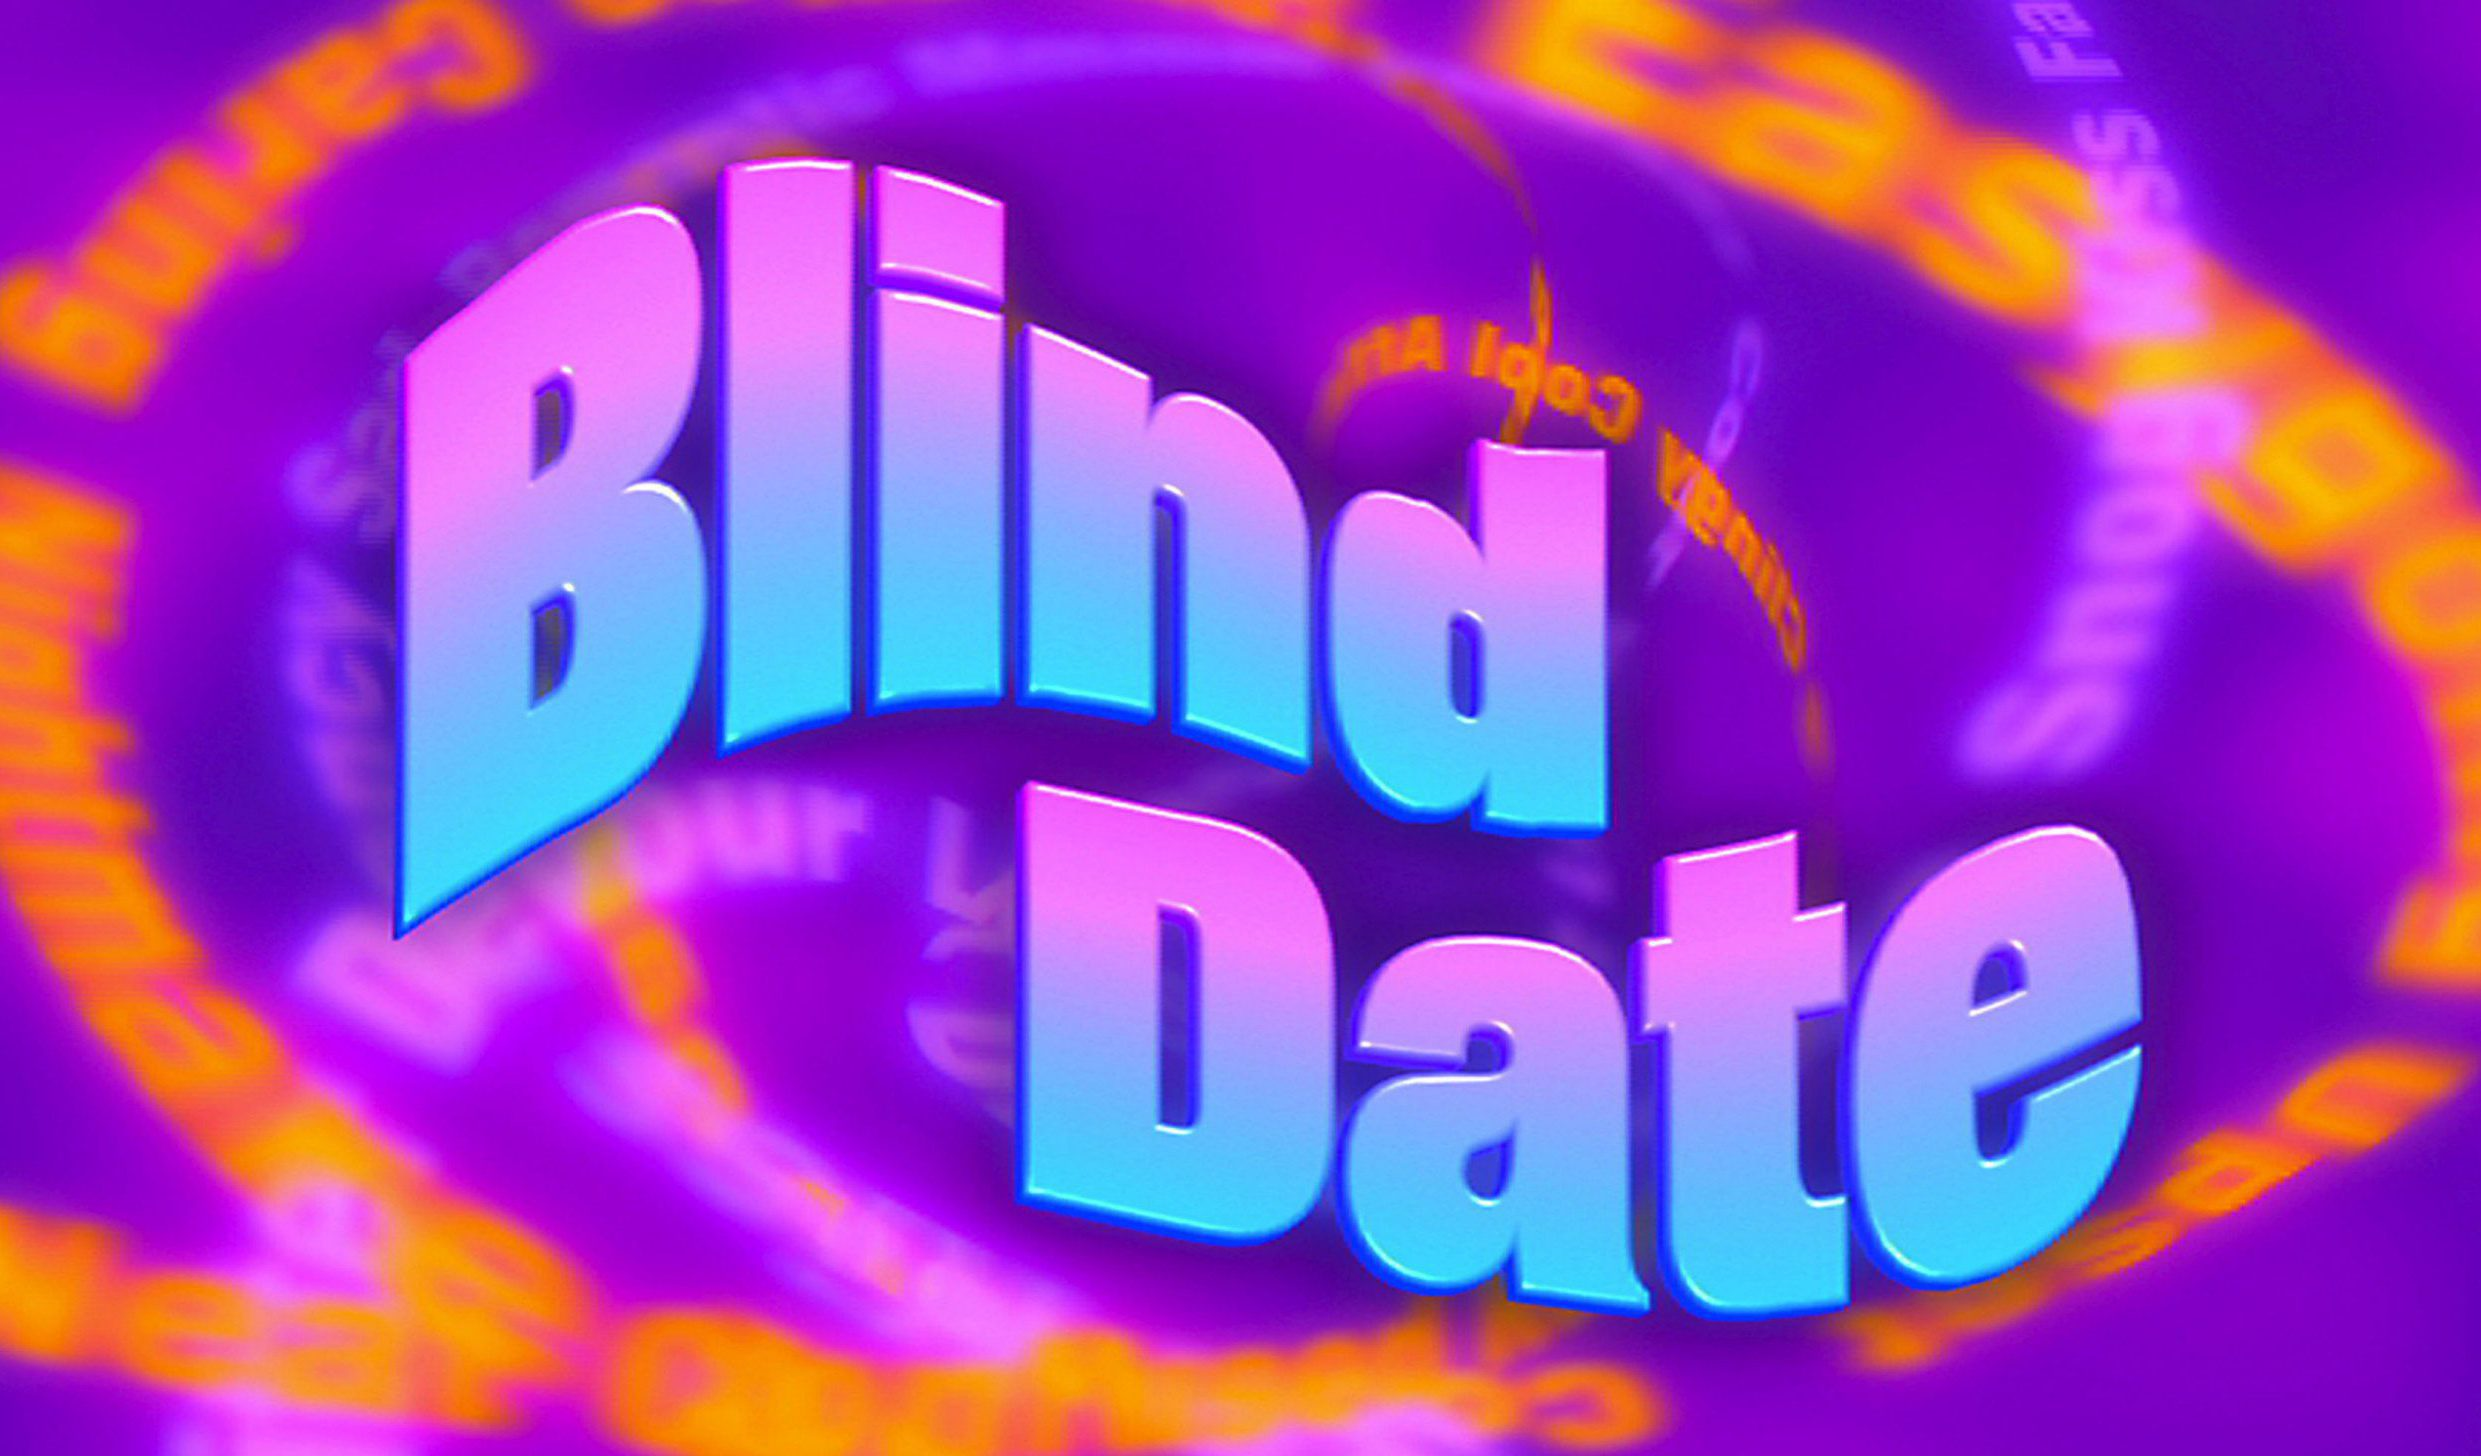 The new version of Blind Date will feature LGBT contestants for the first time ever